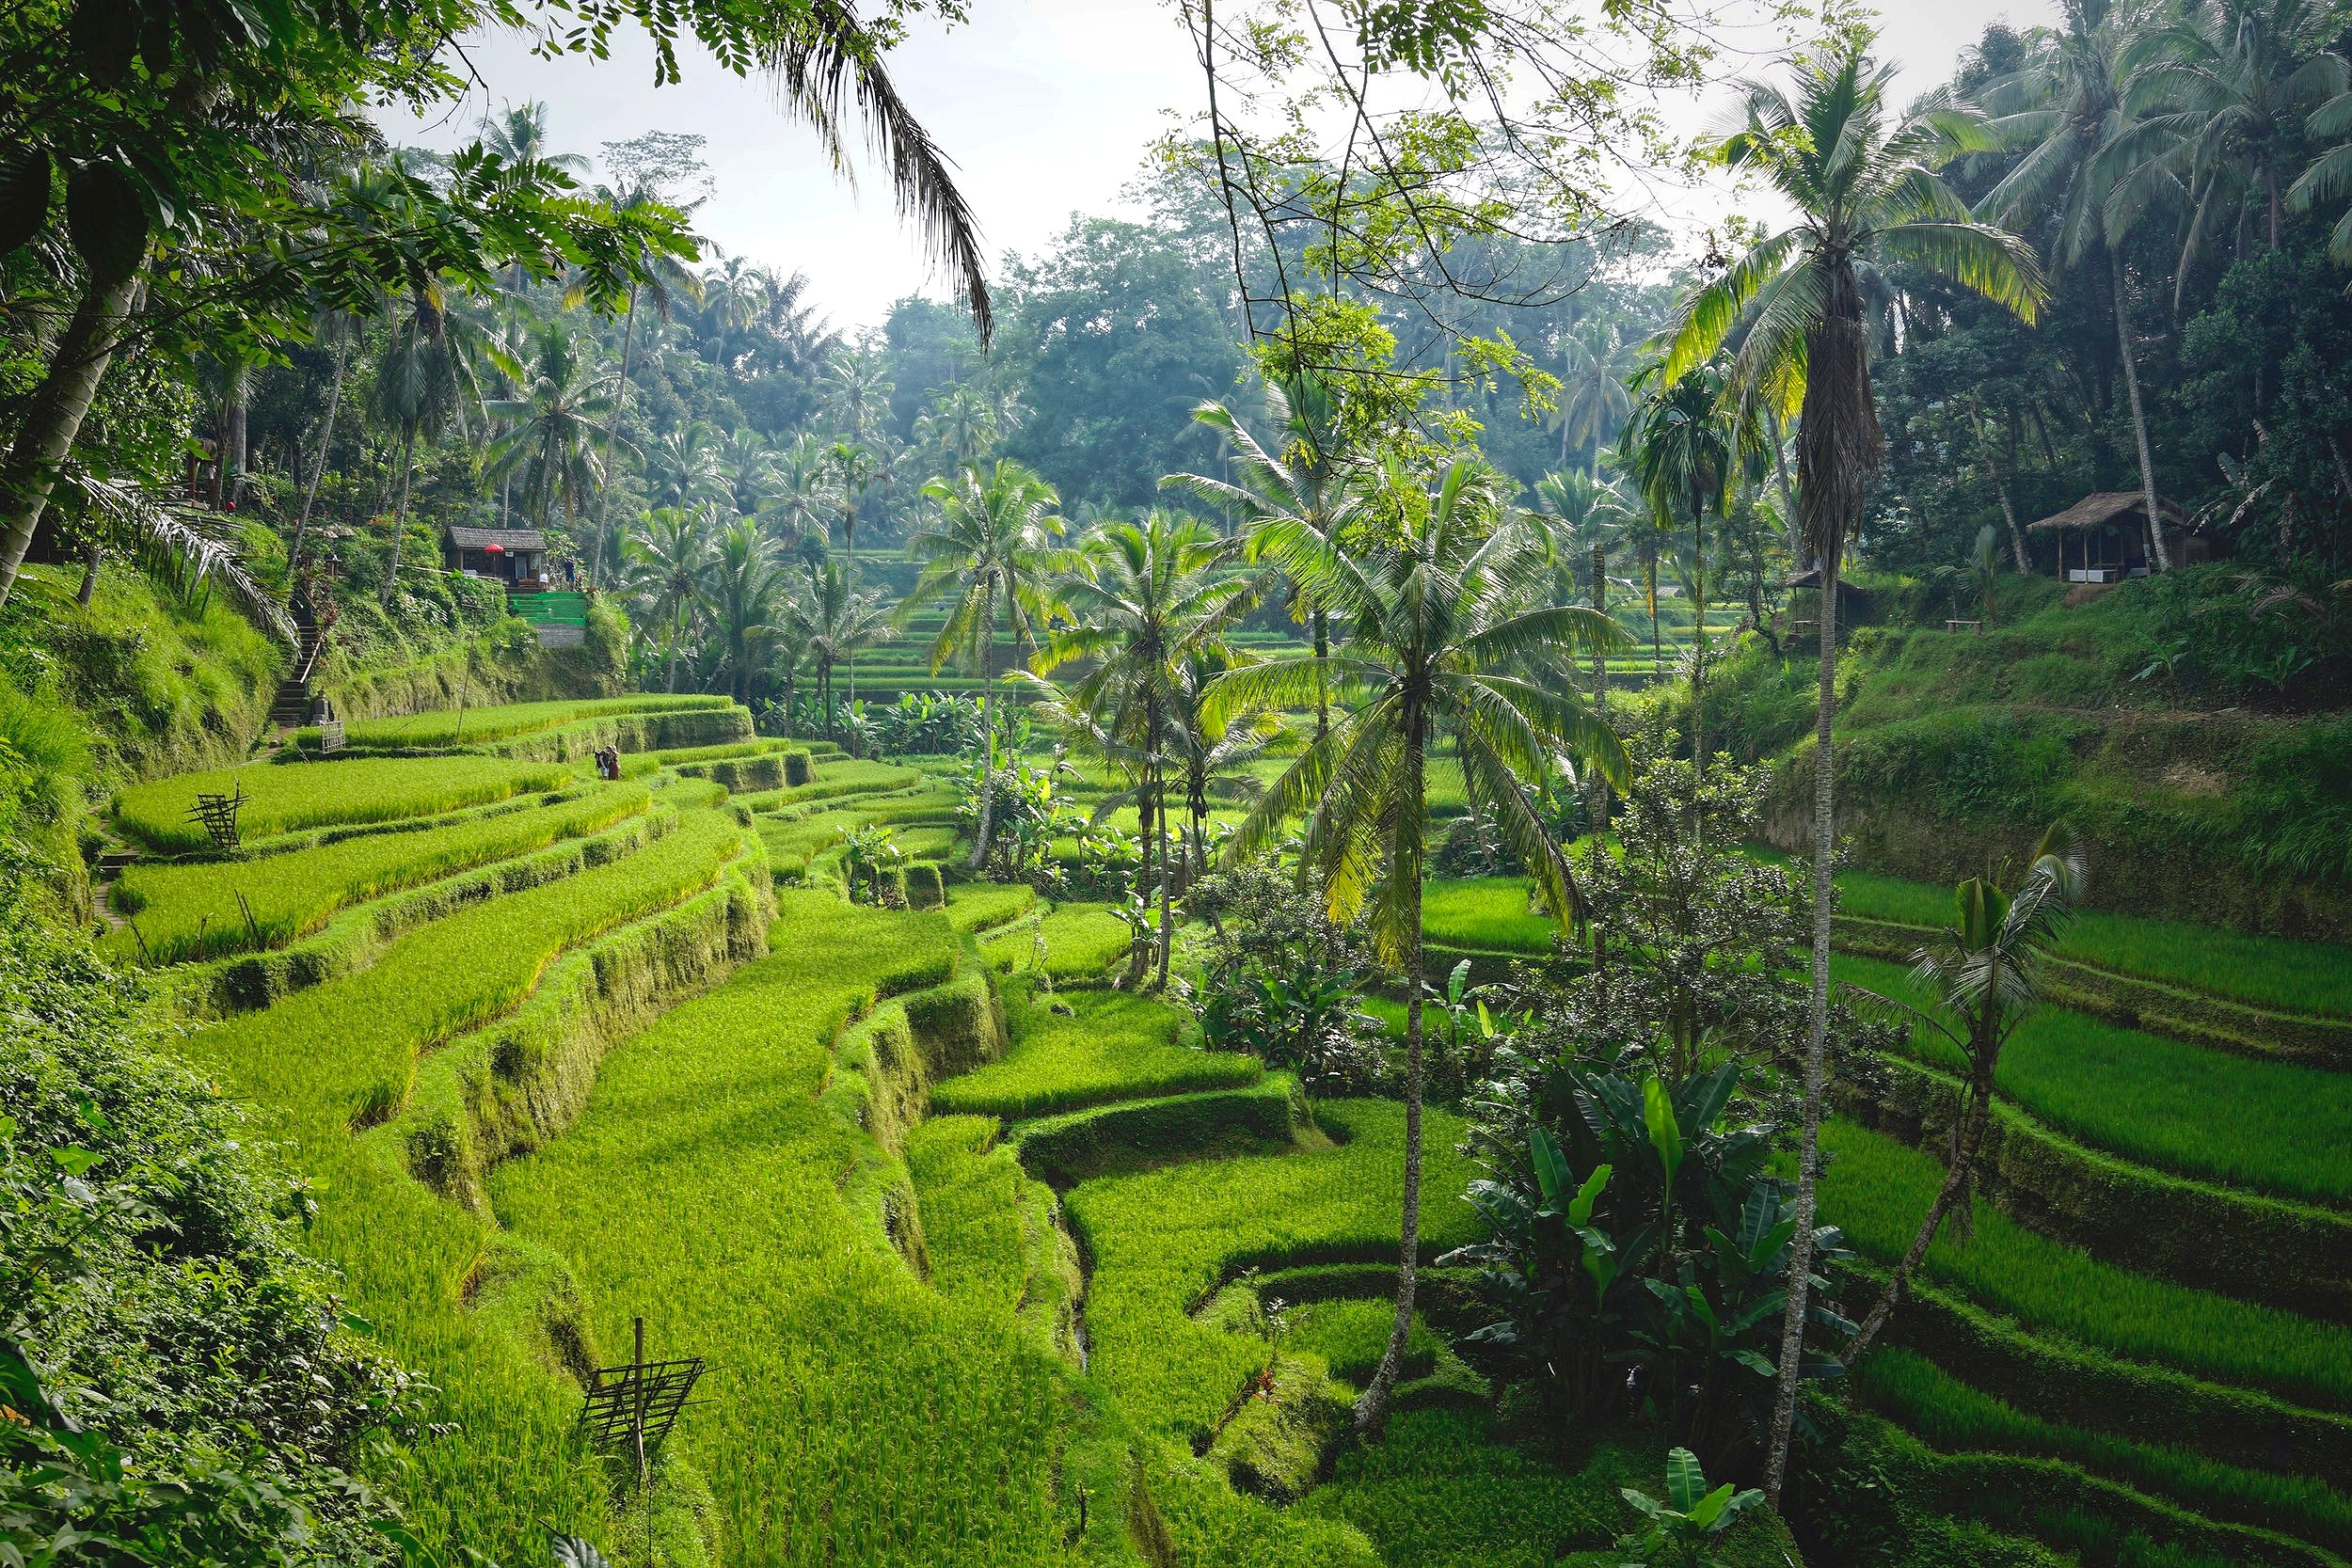 BALI - TRAVEL FOR A PURPOSE